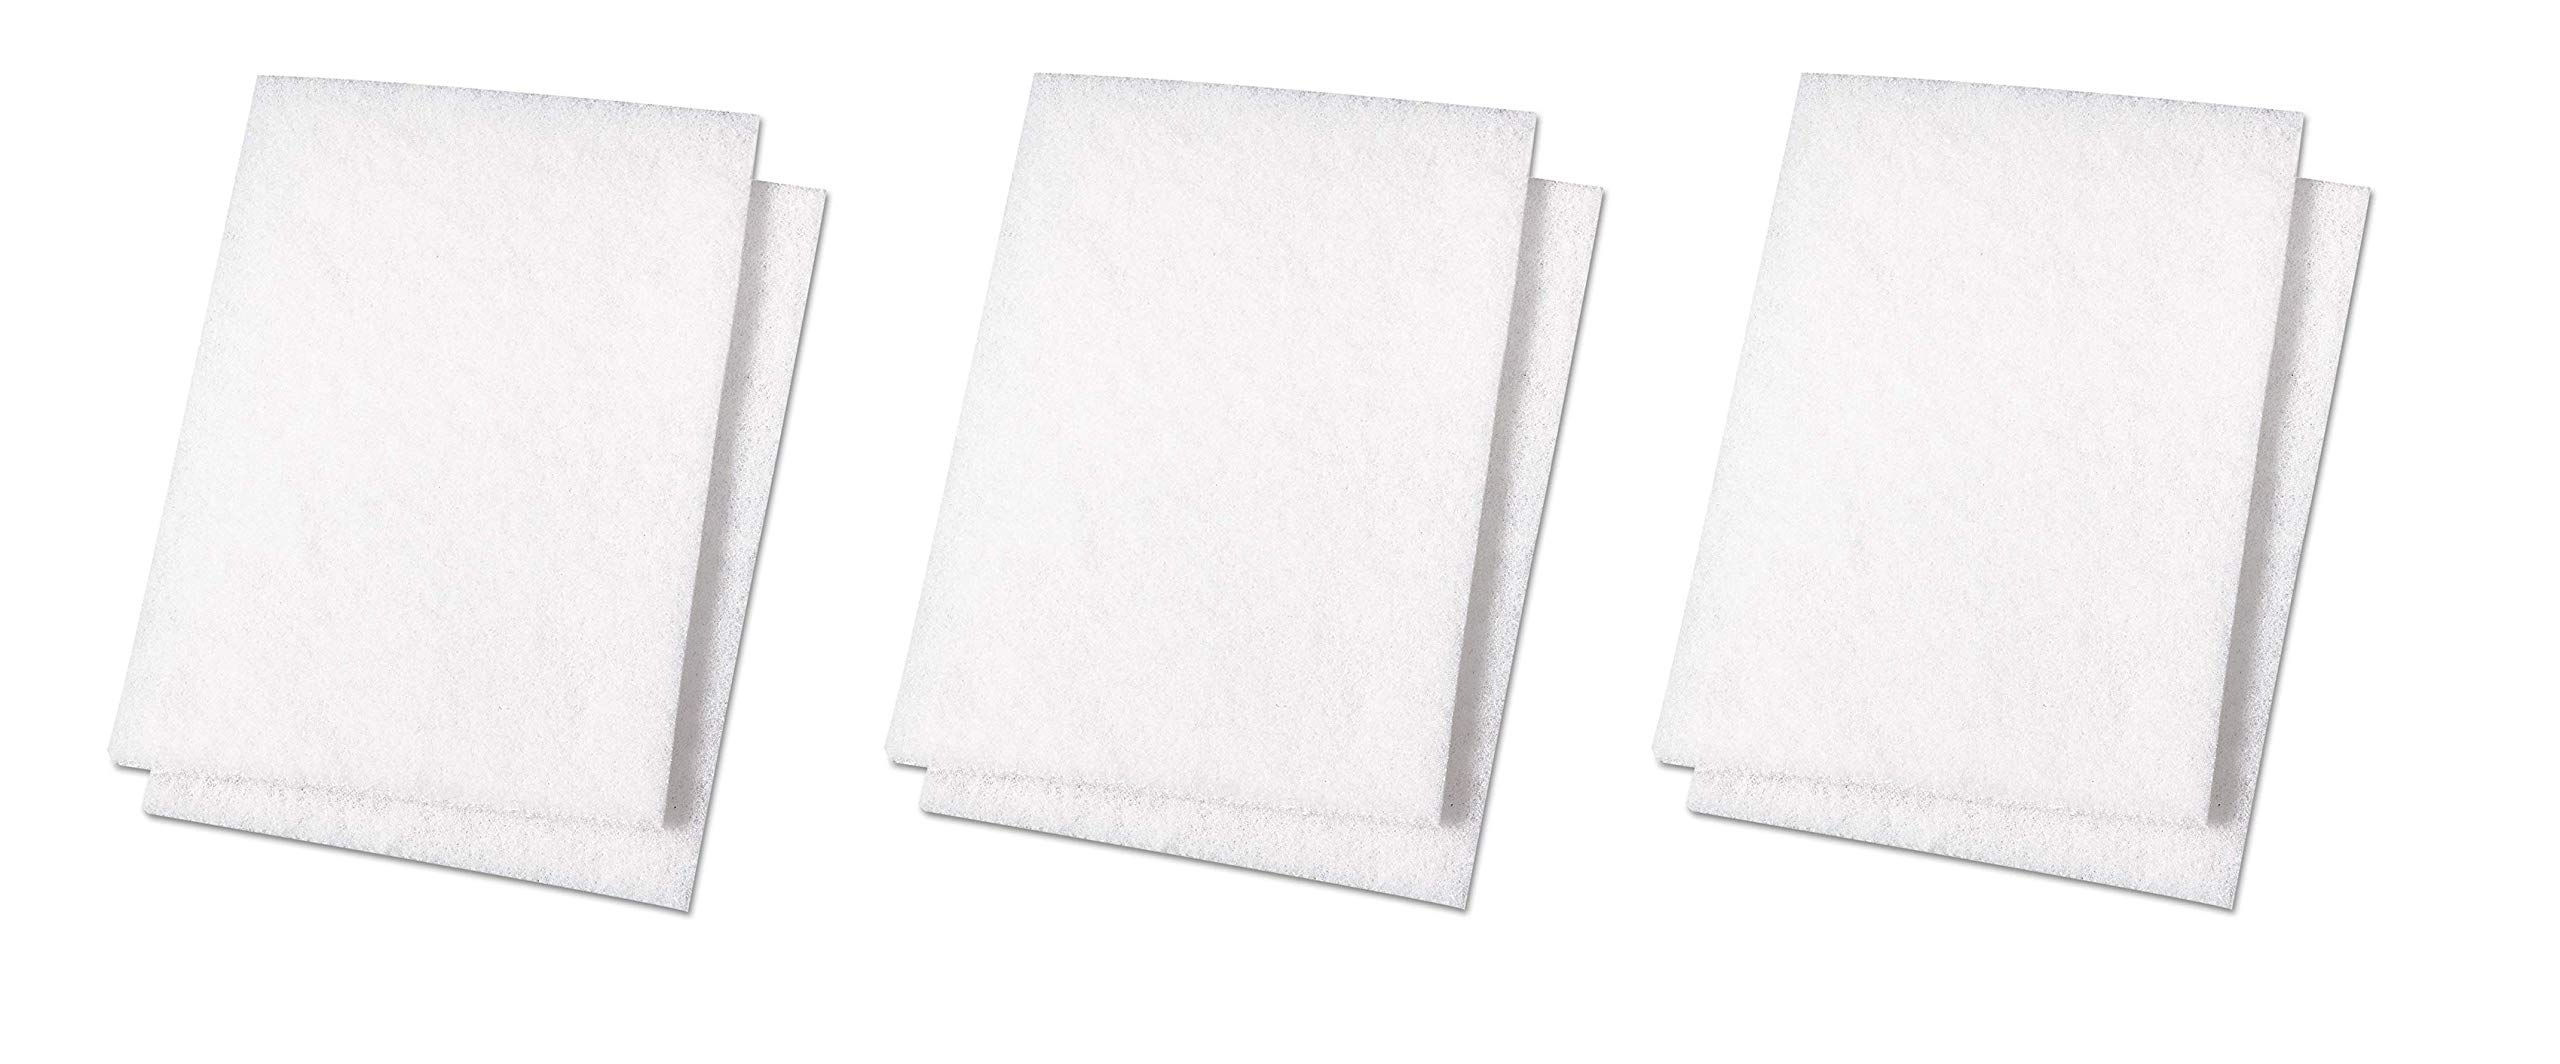 Premiere Pads PAD 198 Light Duty Scouring Pad, 9'' Length by 6'' Width, White (Case of 20) (3-Pack)